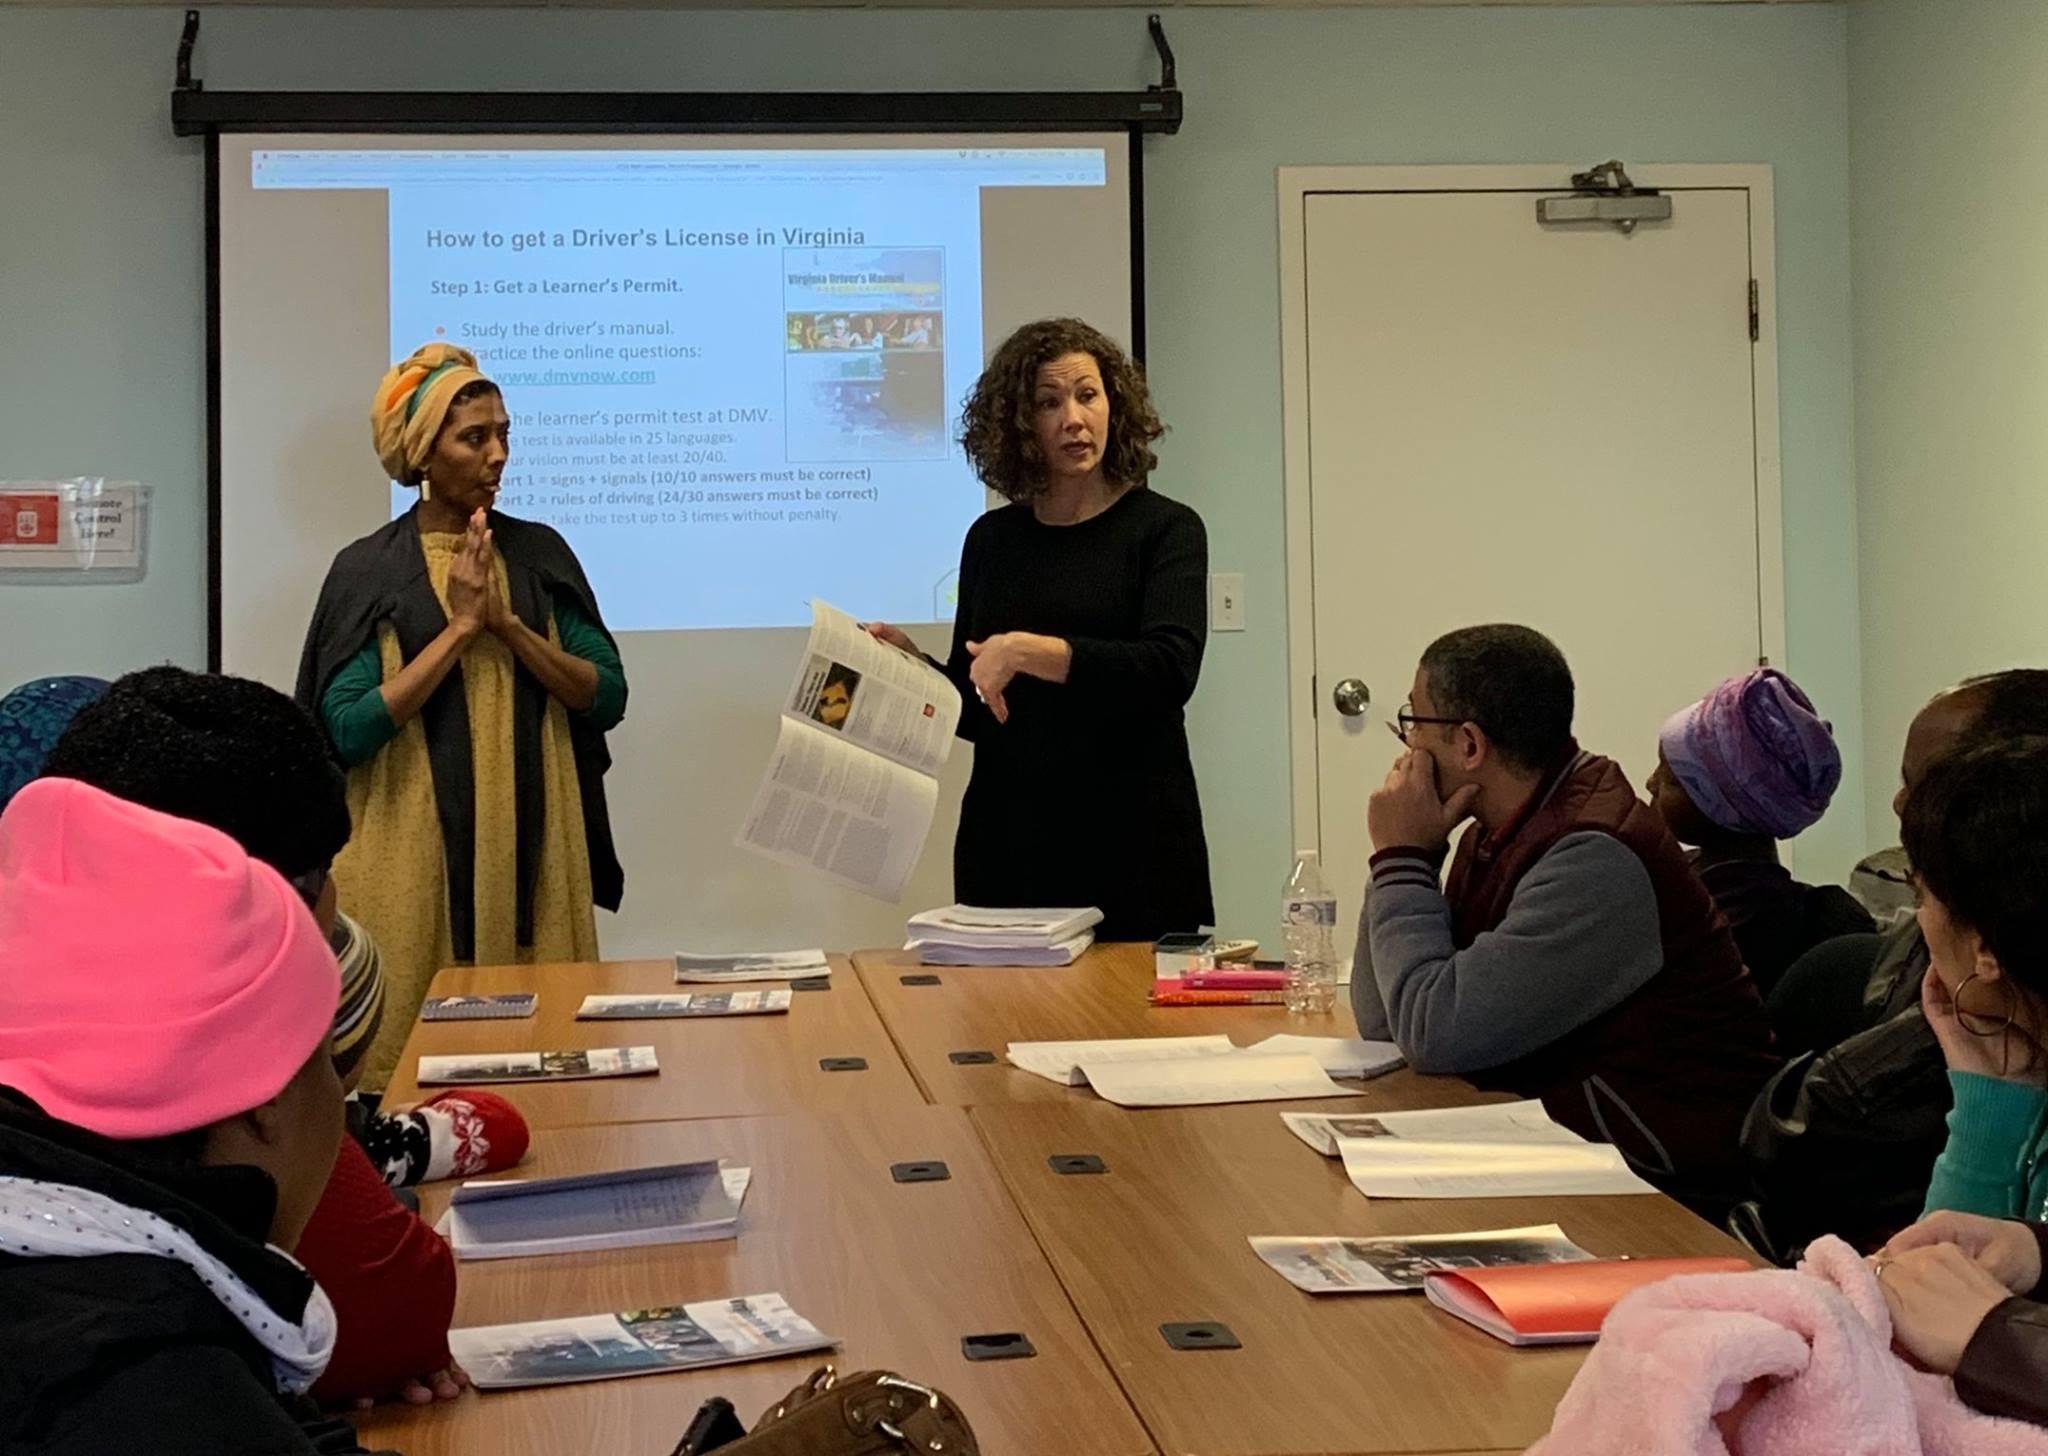 A learner's permit class taught by our Refugee Outreach Coordinator and interpreted into Arabic